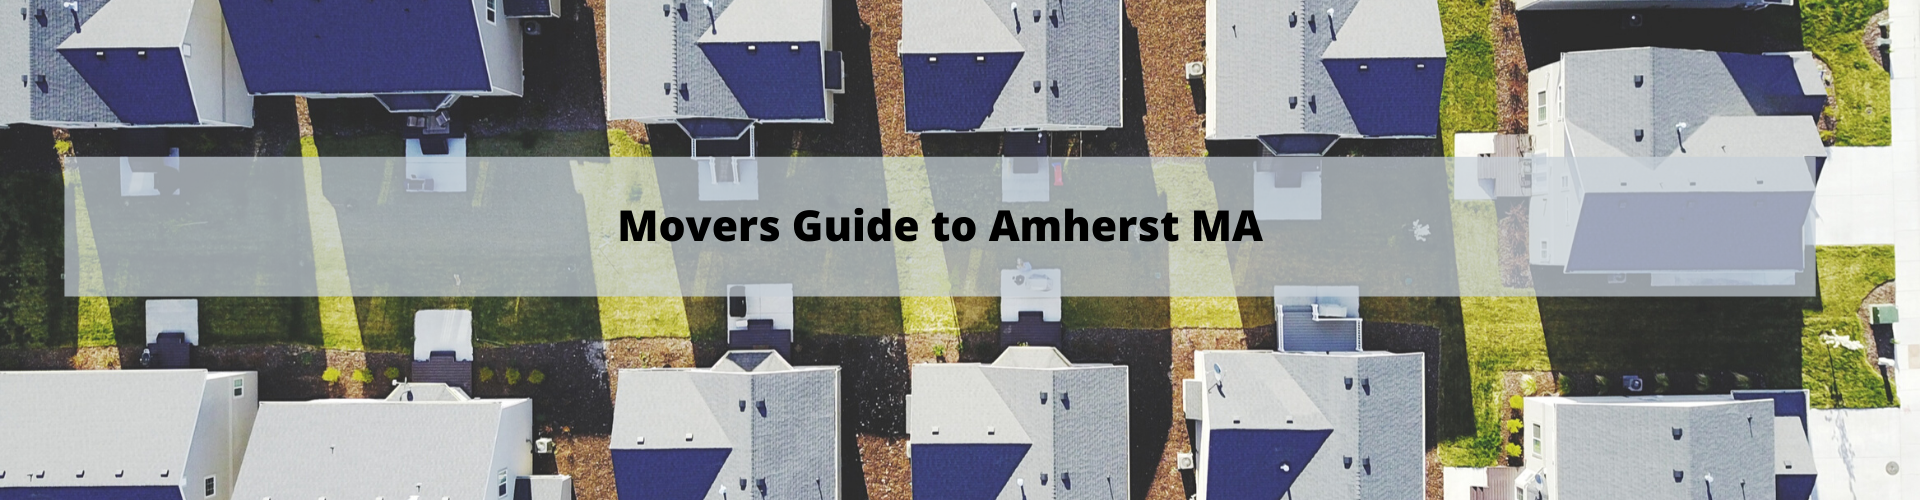 Movers Guide To Amherst MA